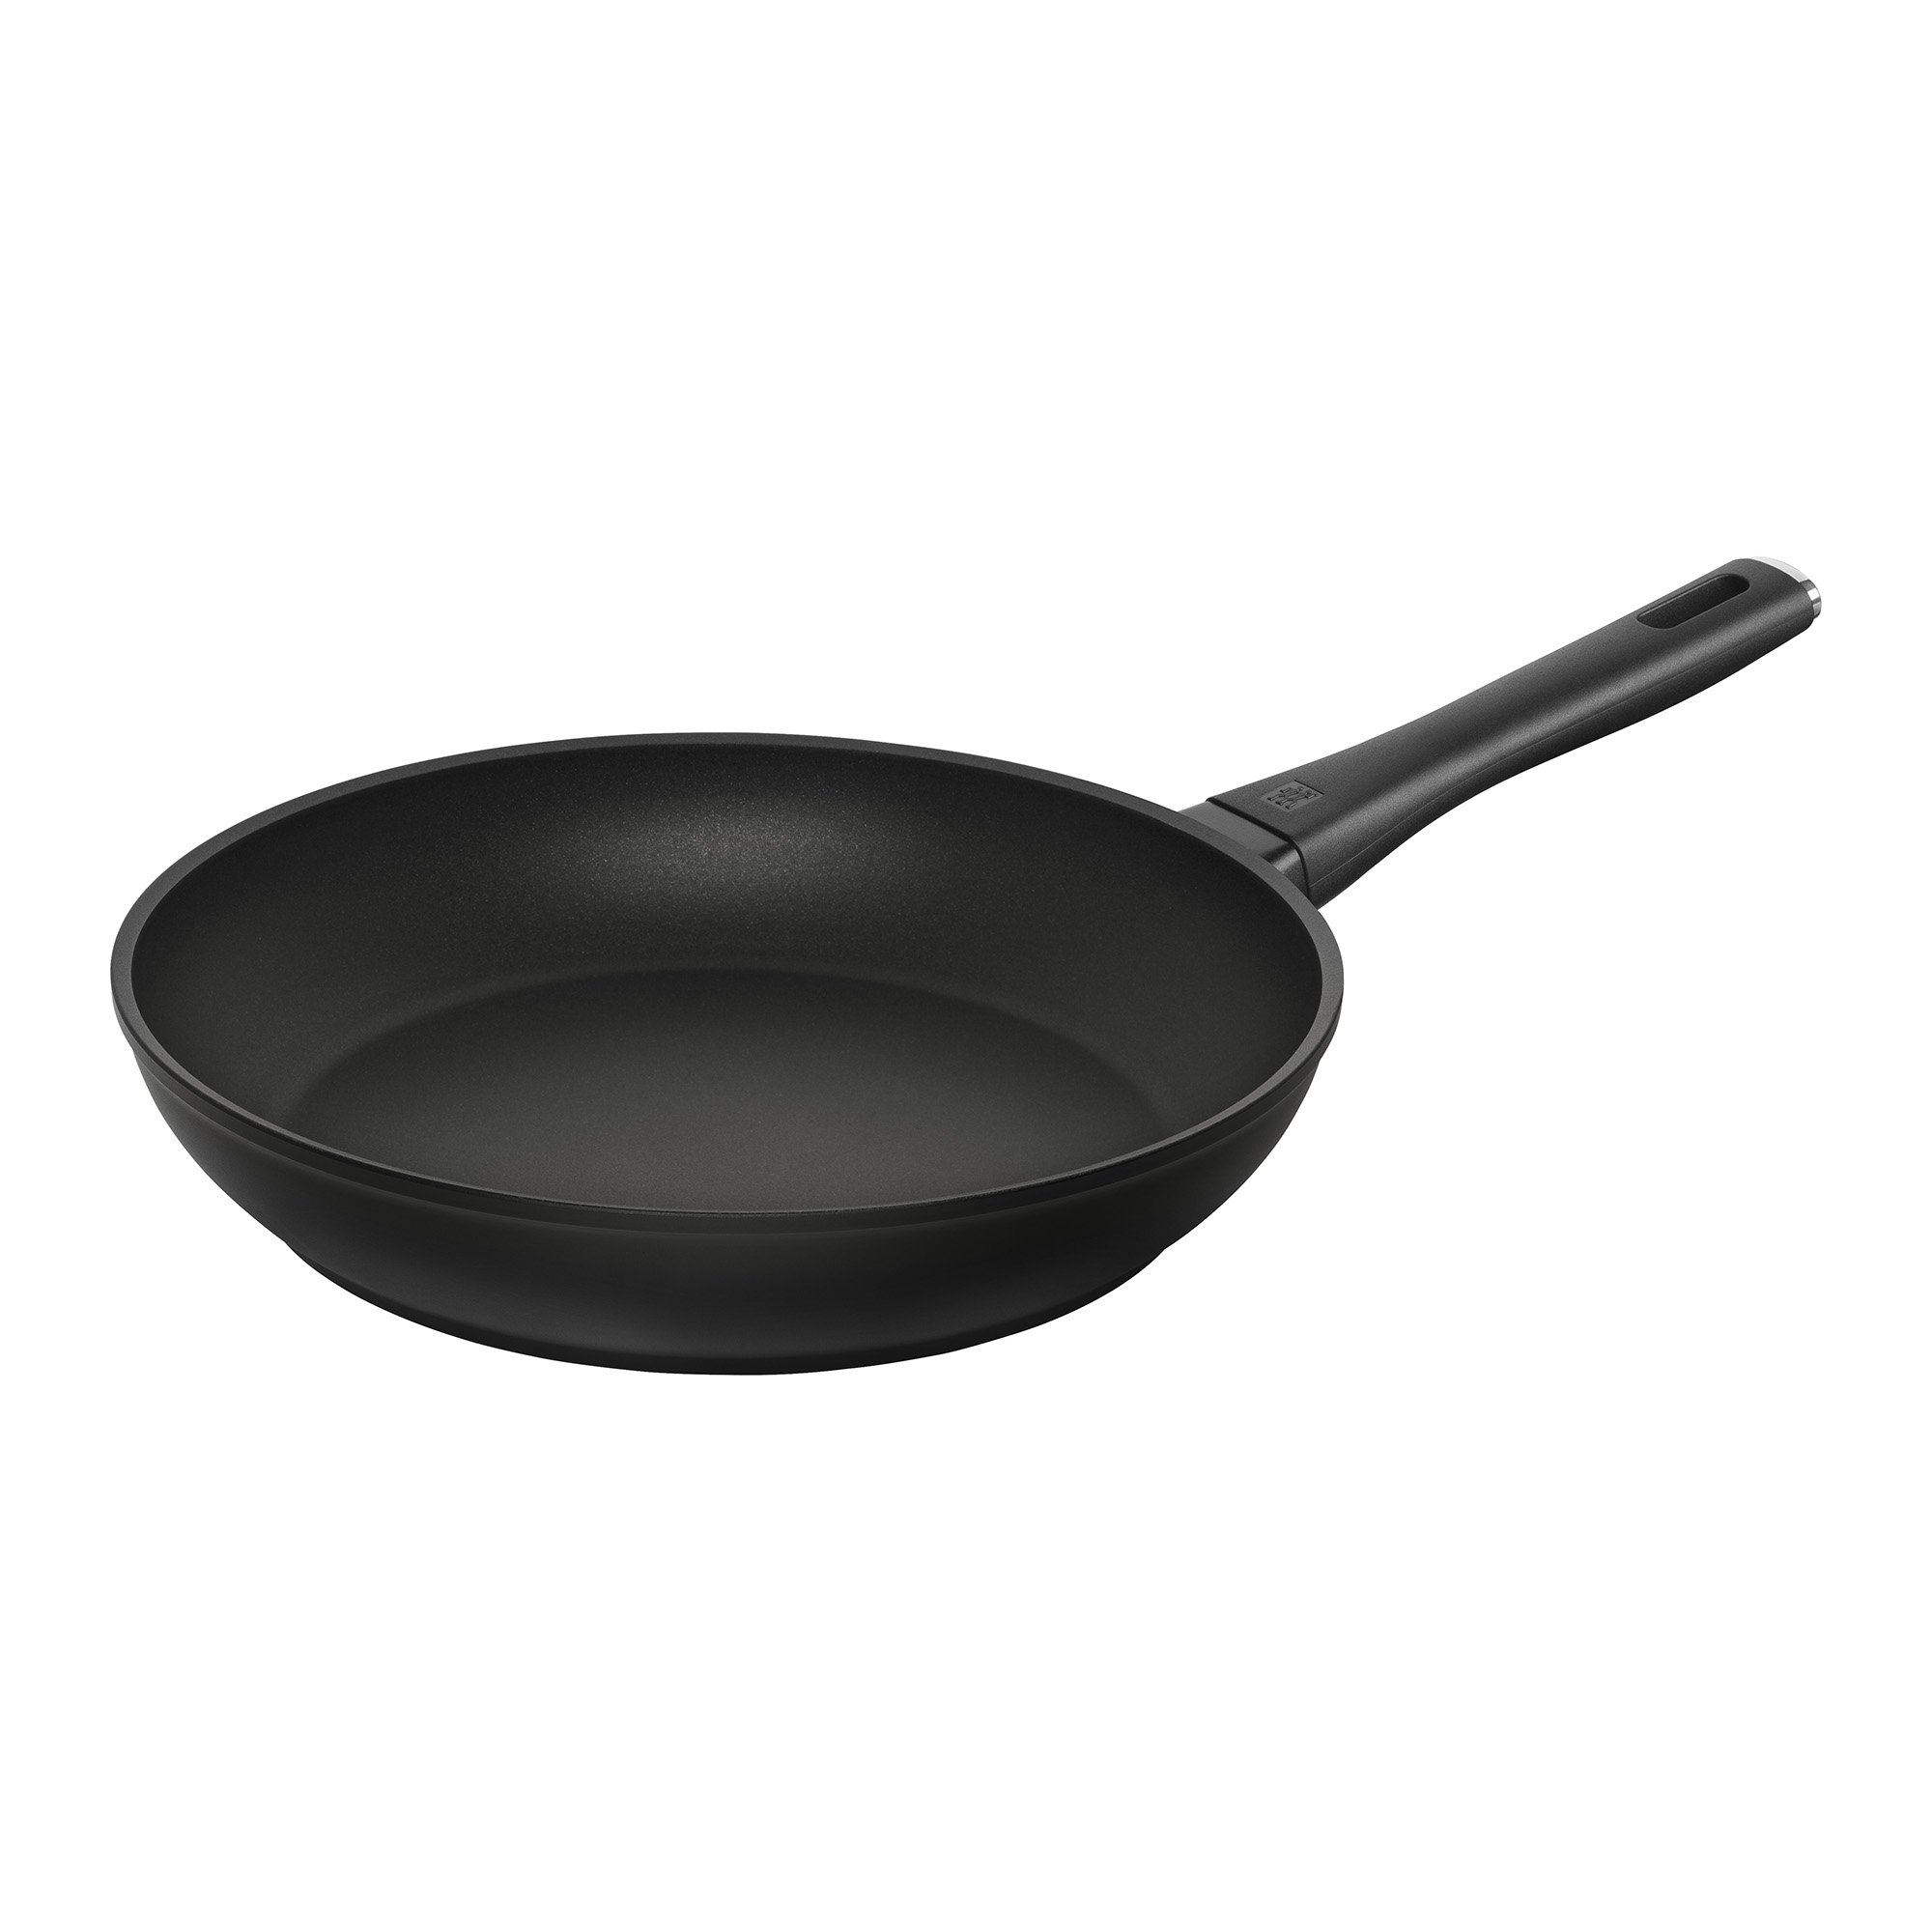 ZWILLING Madura Plus Forged 11'' Nonstick Fry Pan